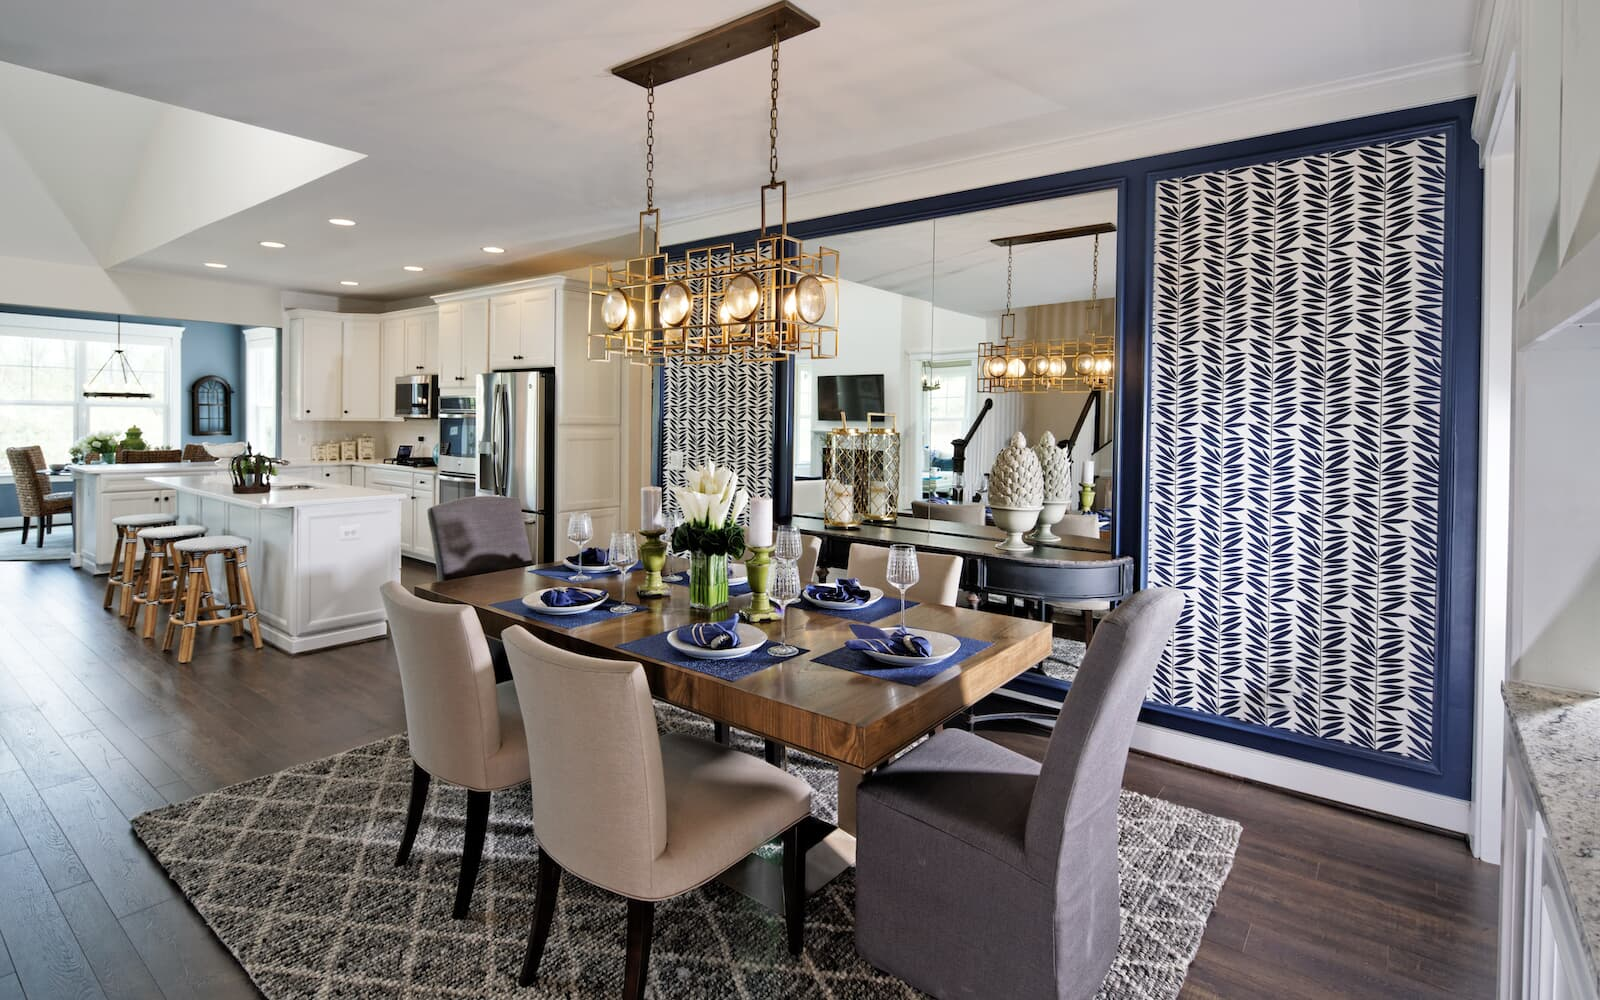 Cresswell-dining-room-single-family-homes-leesburg-va-waterford-manor-brookfield-residential